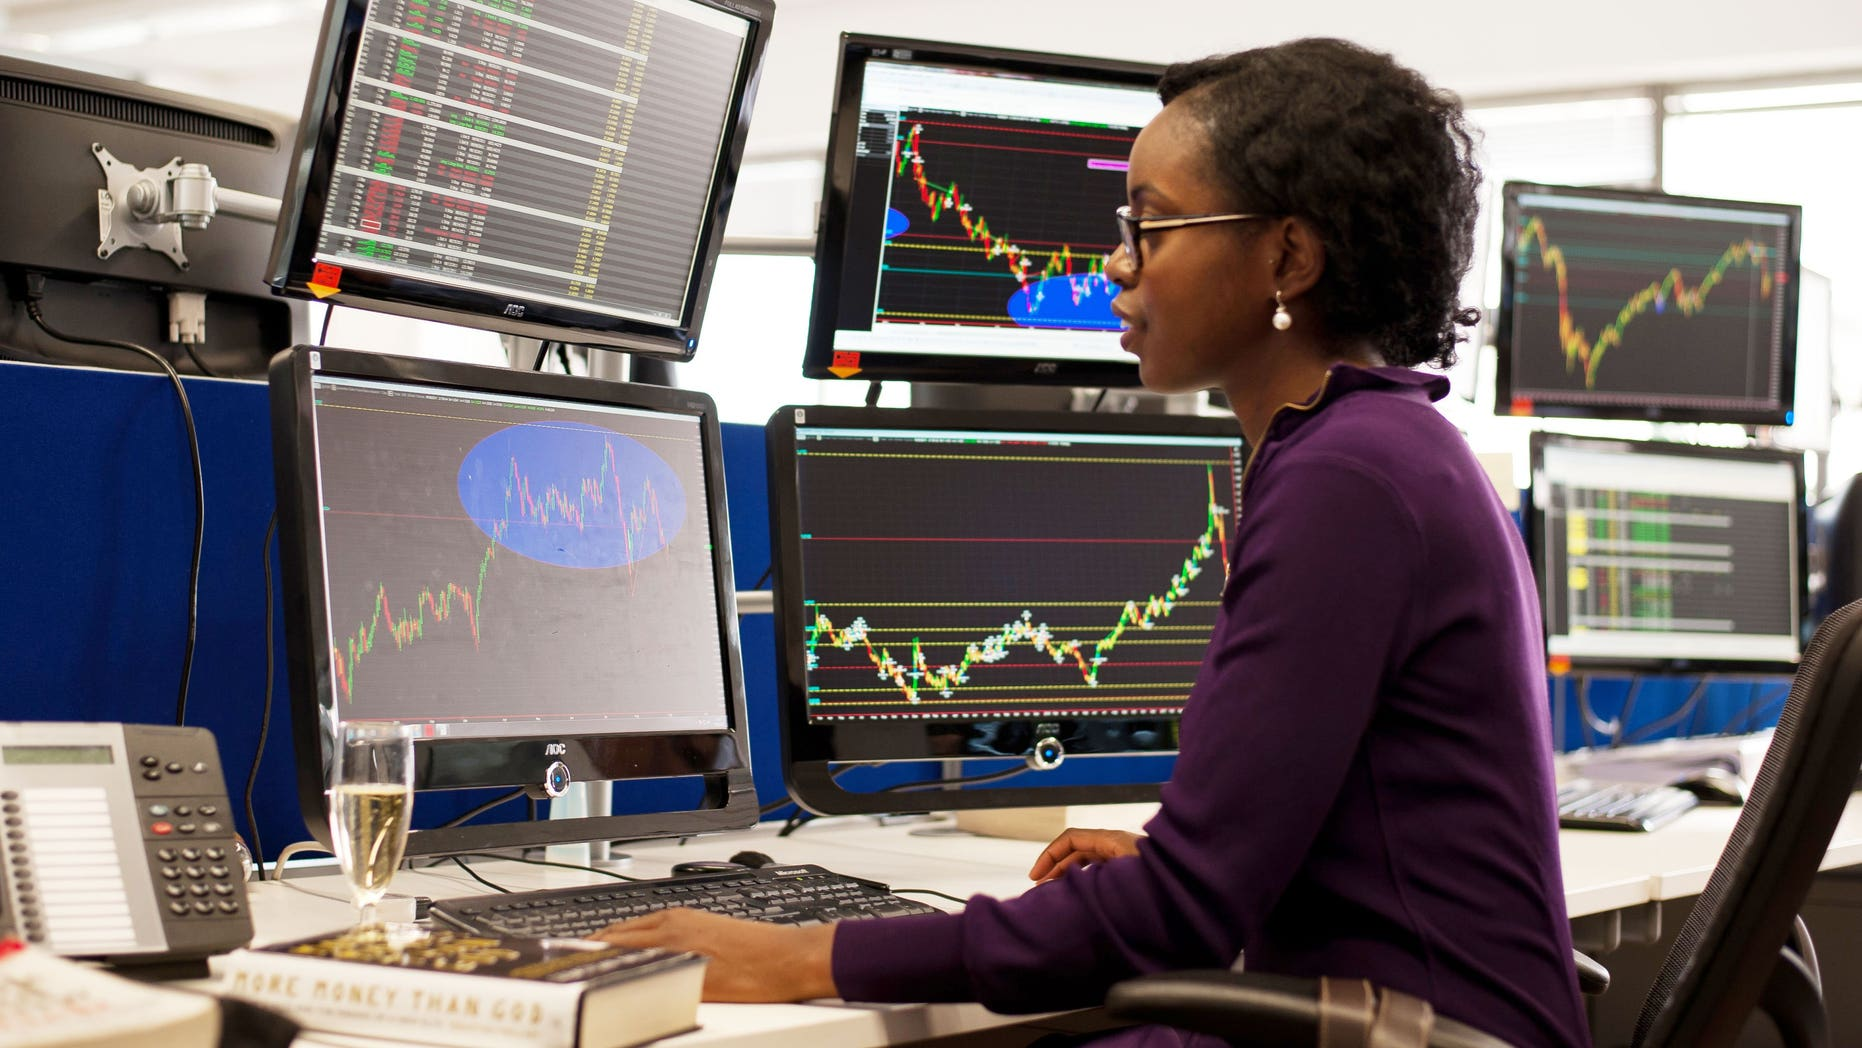 A woman on a trader training programme in London. London shares closed lower on Monday, led by Anglo American and Vedanta, as traders awaited further indications on when the Federal Reserve plans to reduce its huge stimulus programme.